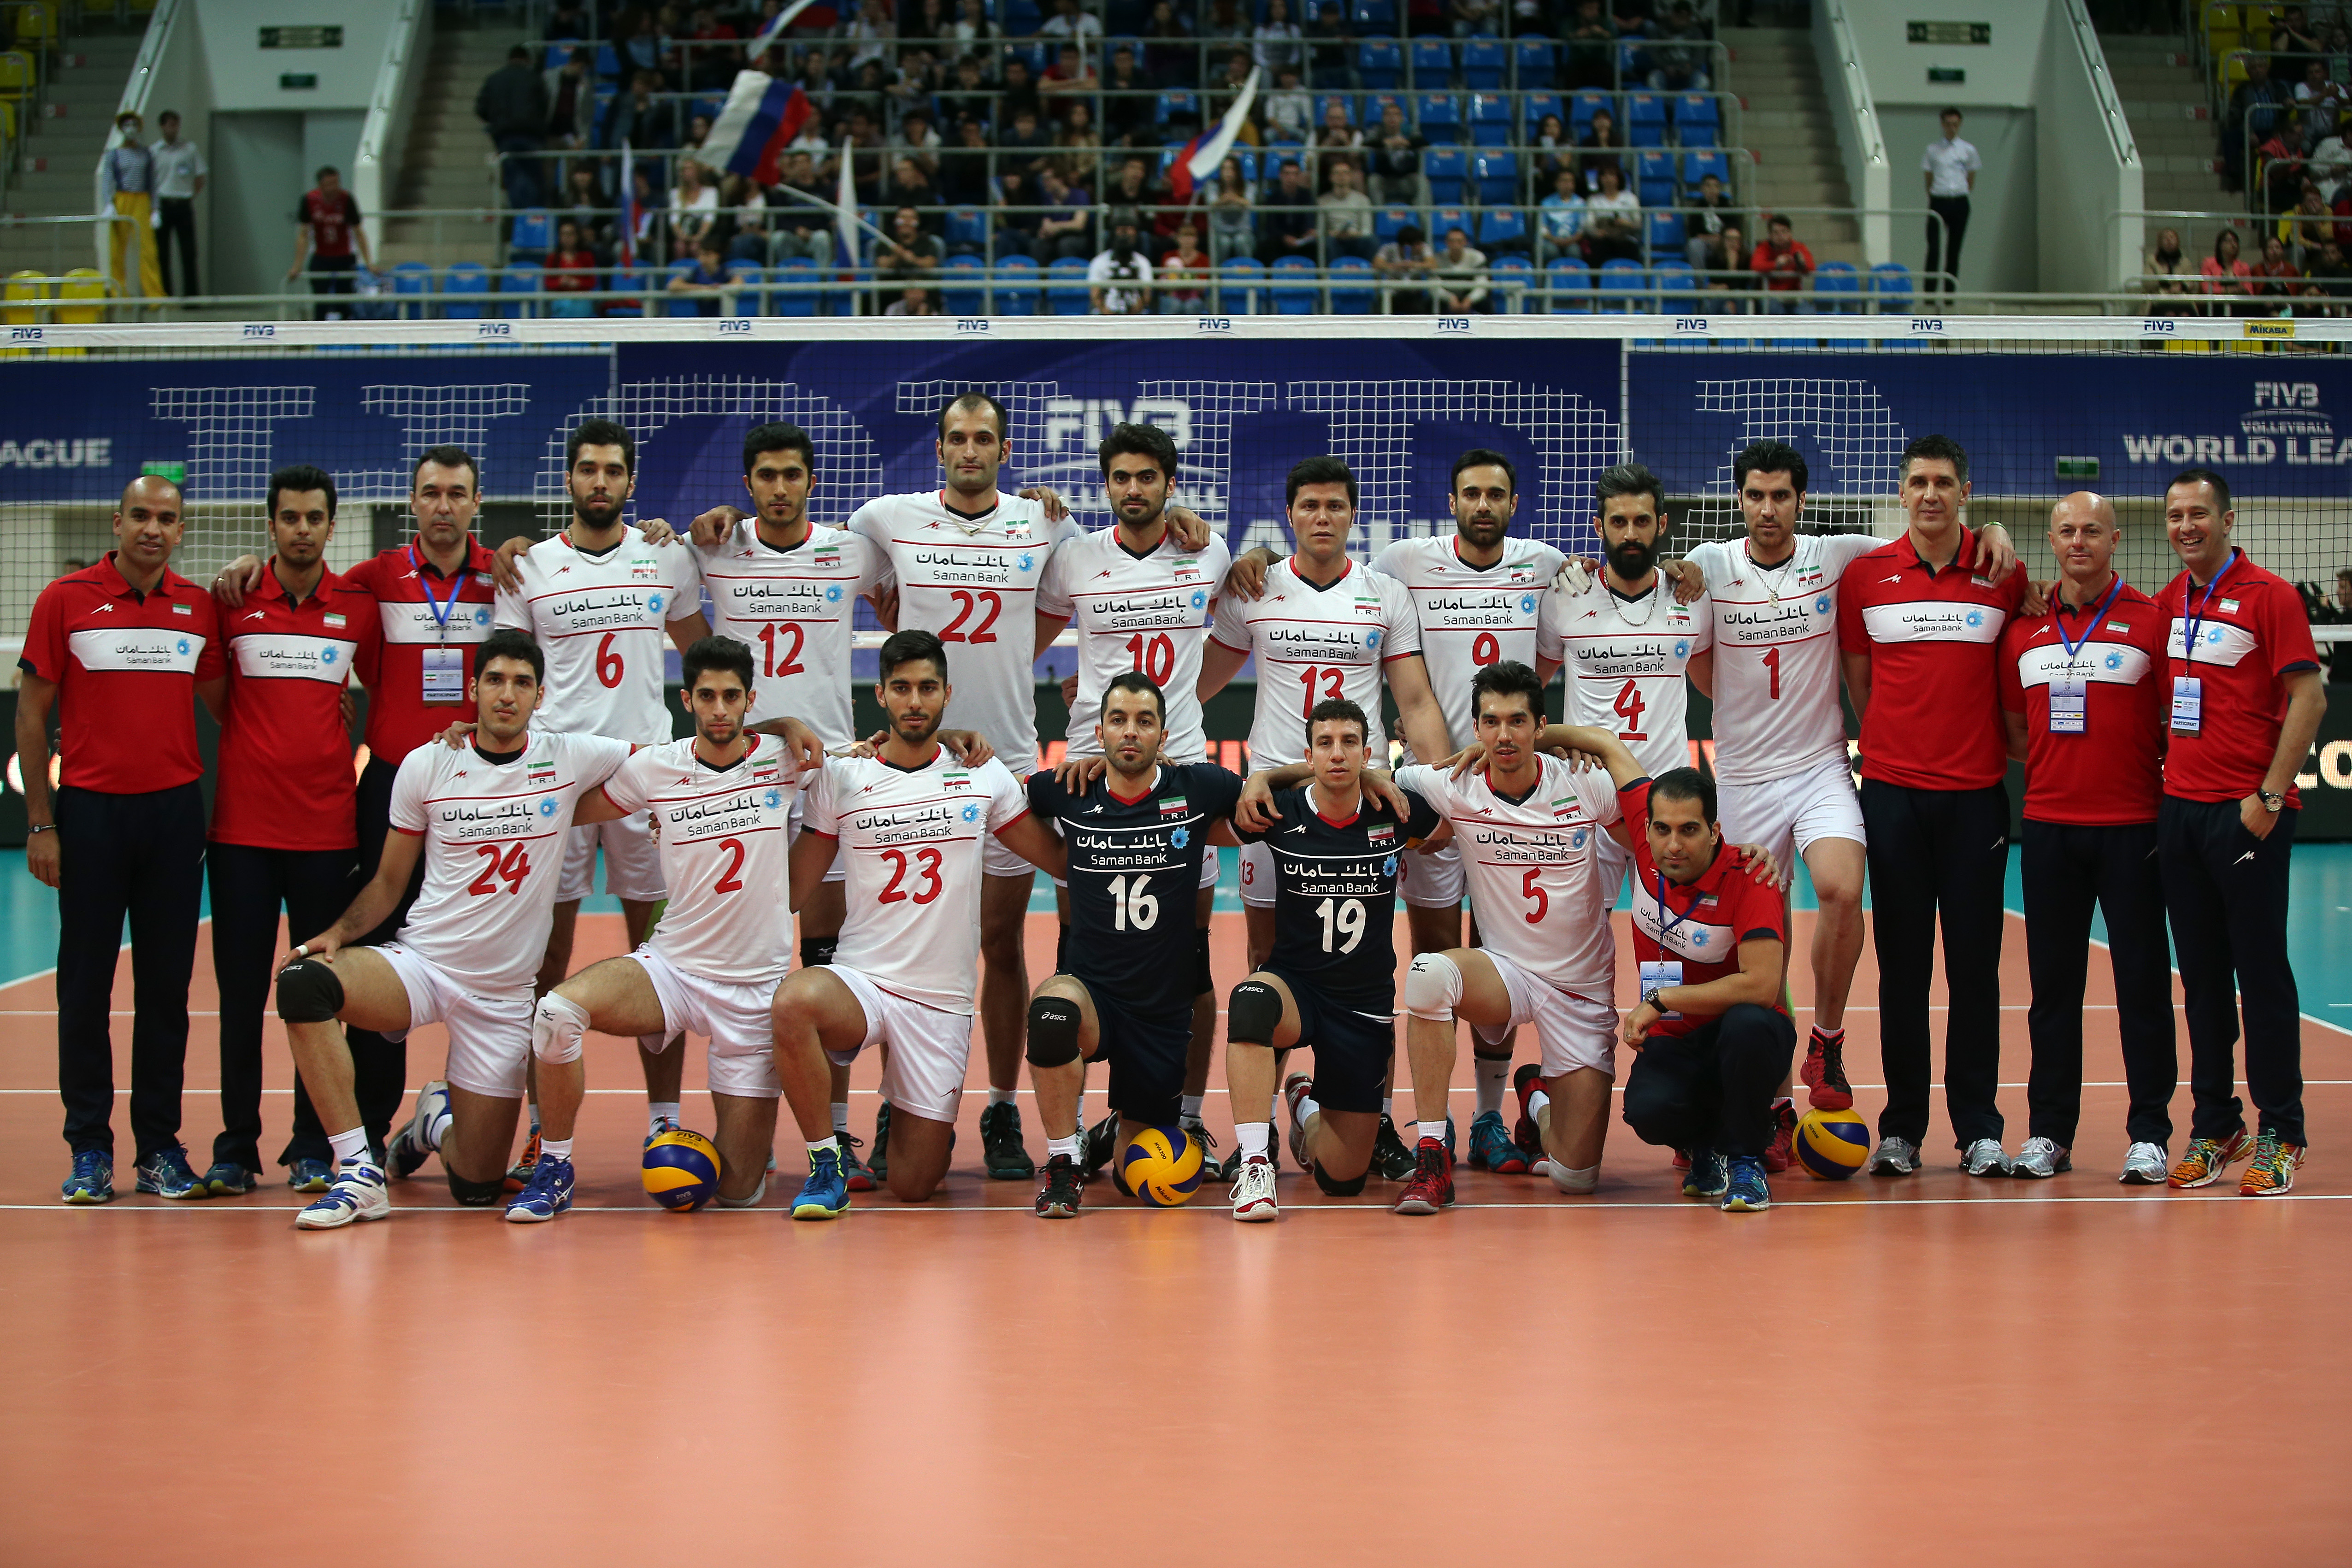 http://www.fivb.org/Vis2009/Images/GetImage.asmx?No=201479976&maxSize=960